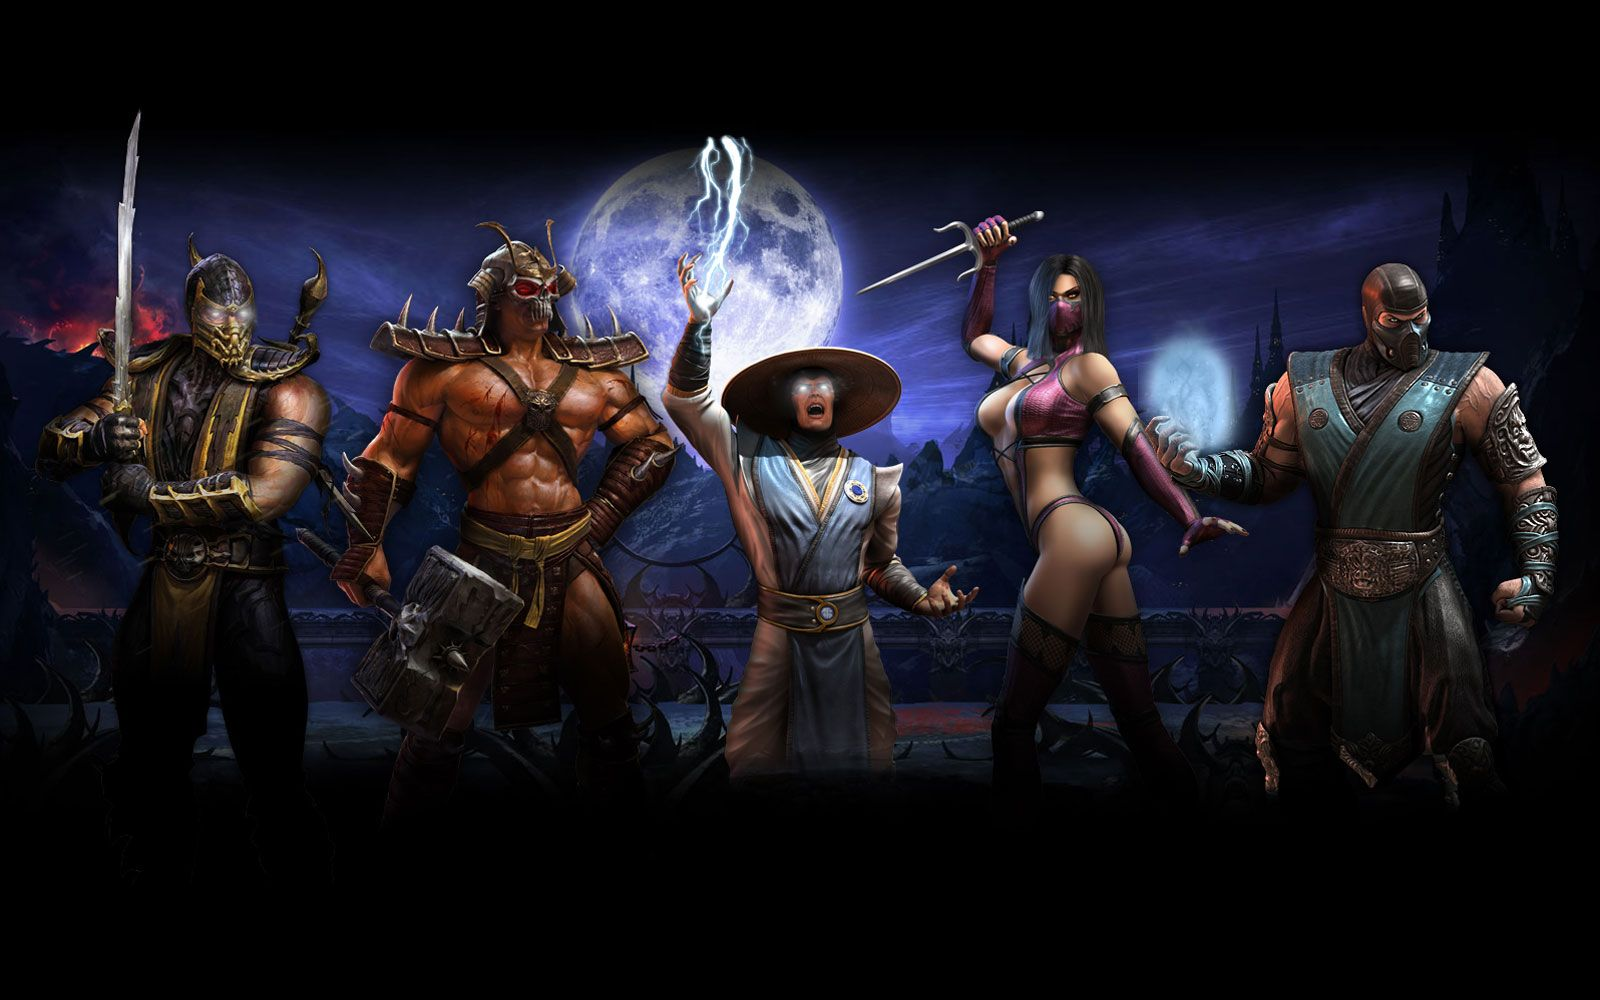 Mortal Kombat 9 Dlc Characters Free Download Ps3 - pipriority